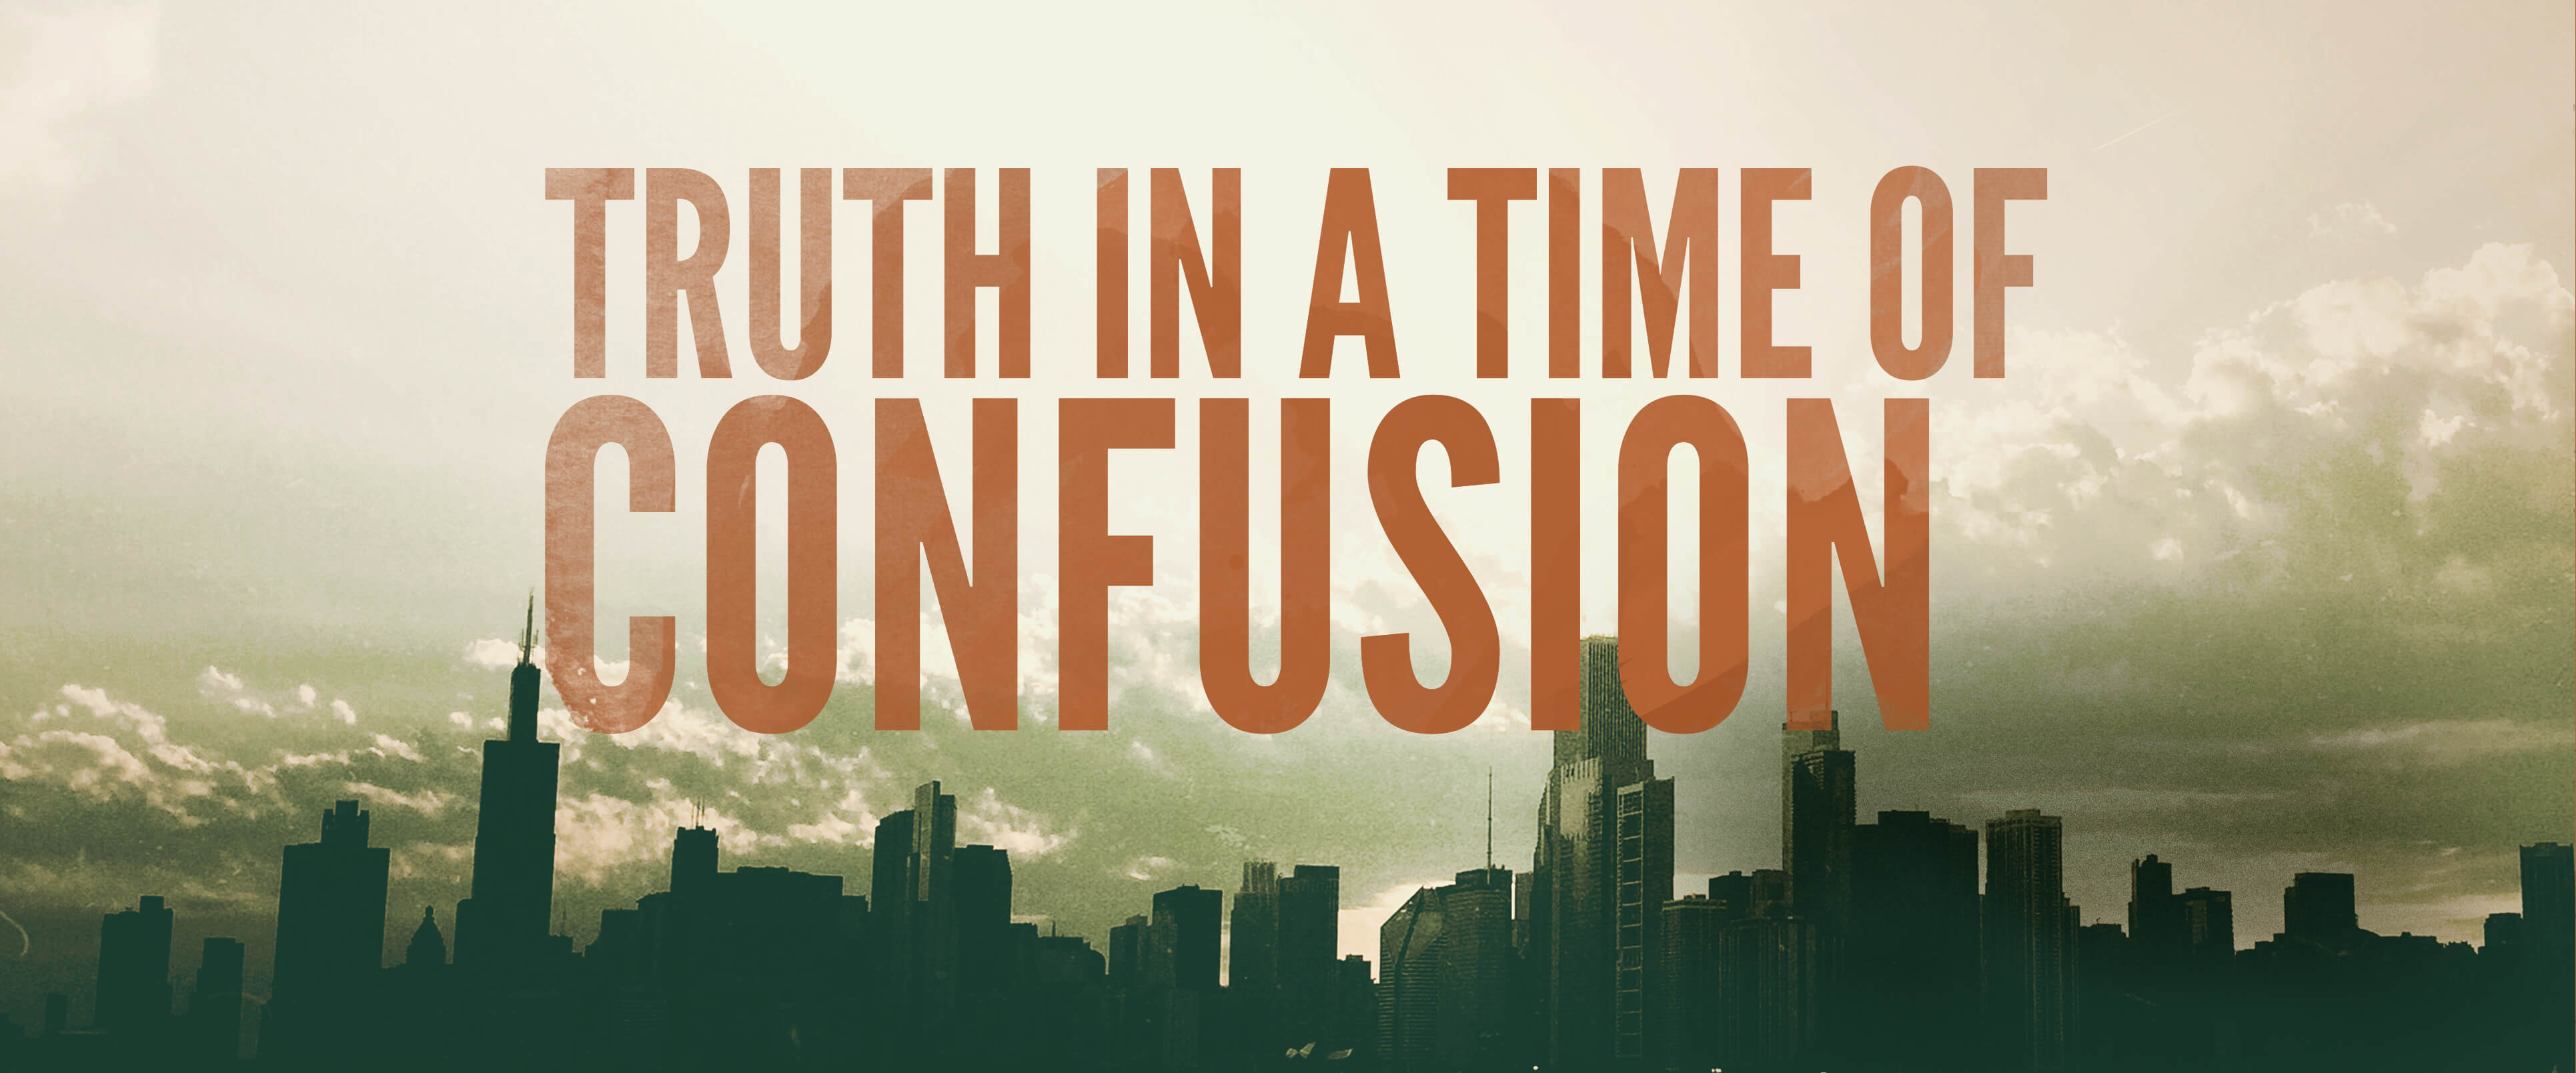 Truth in a time of confusion